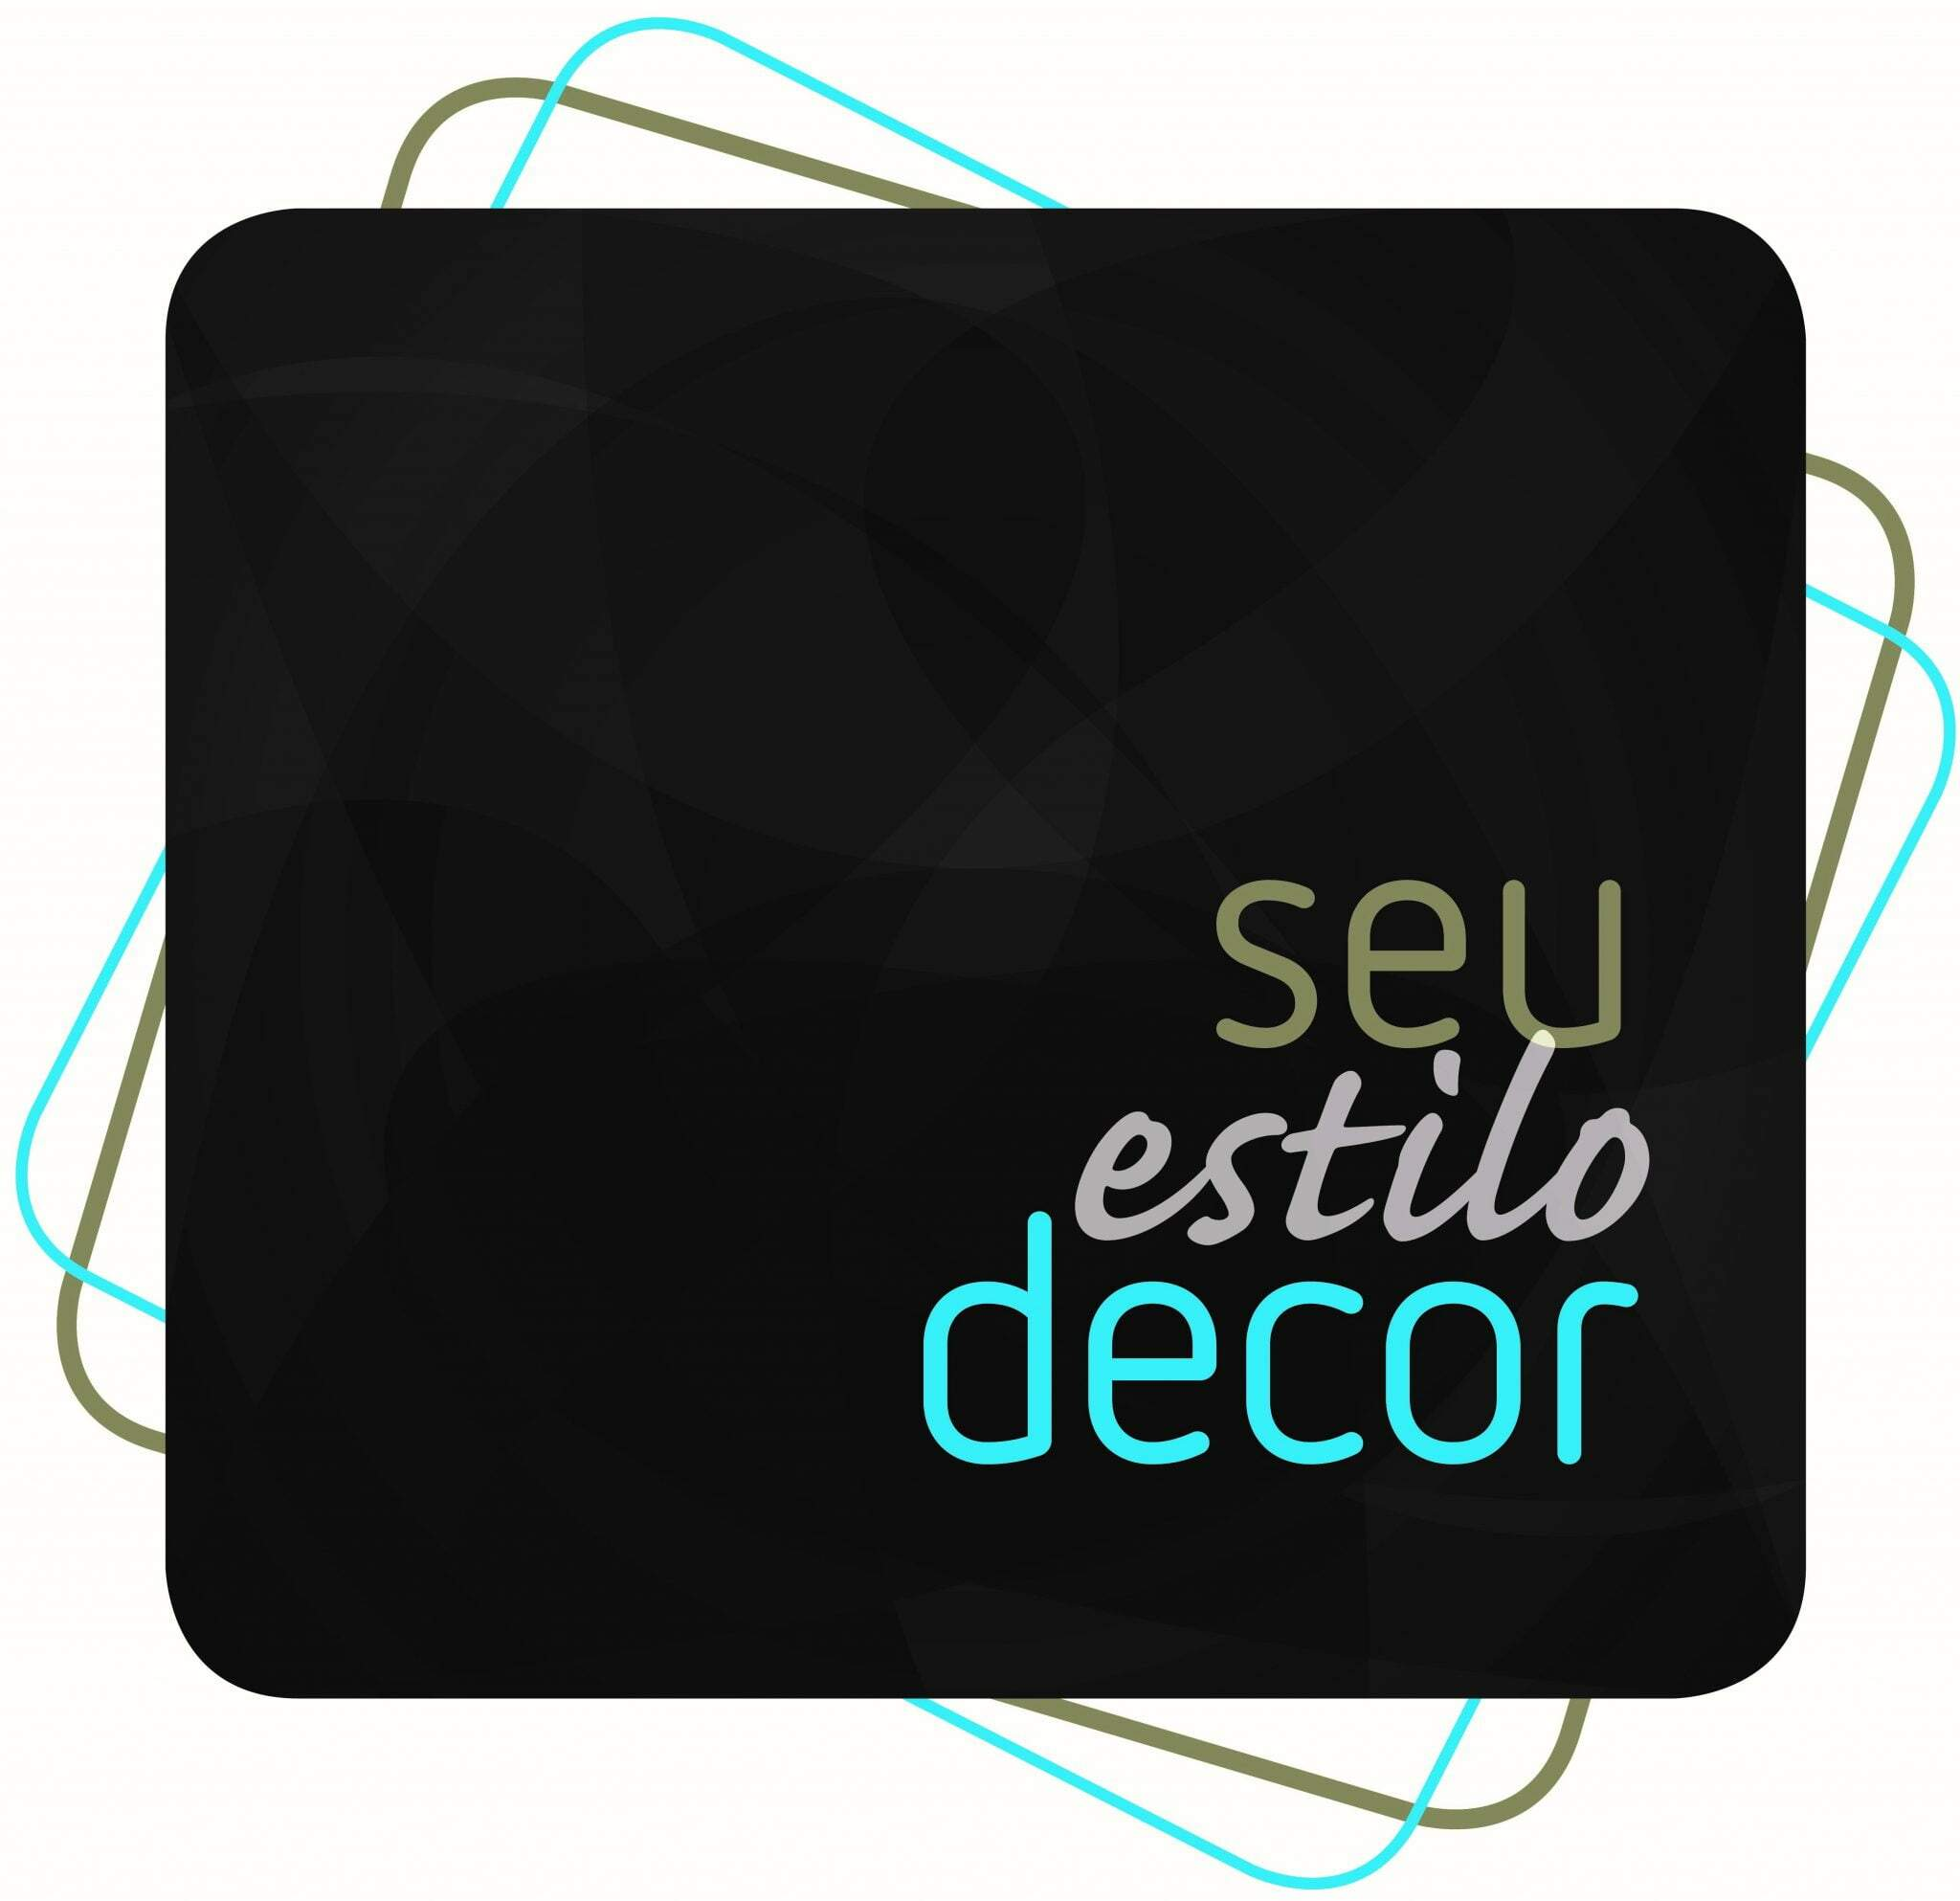 Seu Estilo Decor Cortinas e Persianas